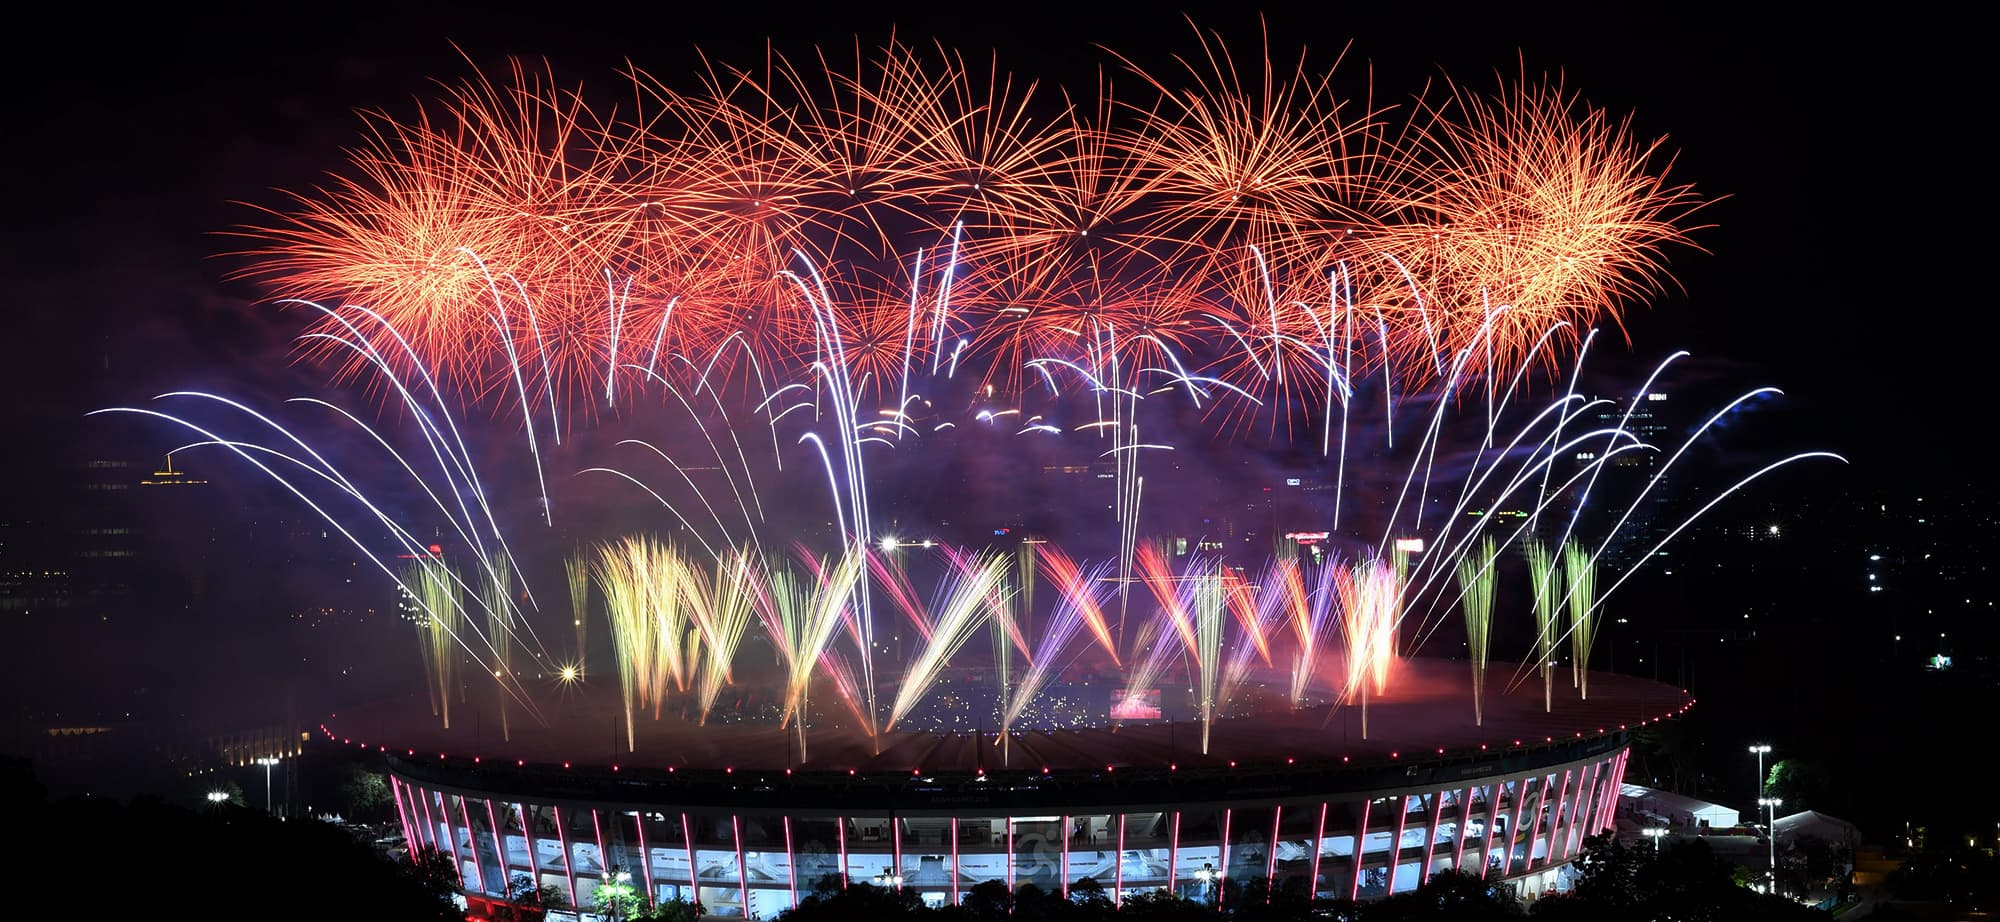 Fireworks explode over the Gelora Bung Karno main stadium during the opening ceremony of the 2018 Asian Games in Jakarta on August 18, 2018. (Photo by Arief Bagus / AFP) — AFP or licensors